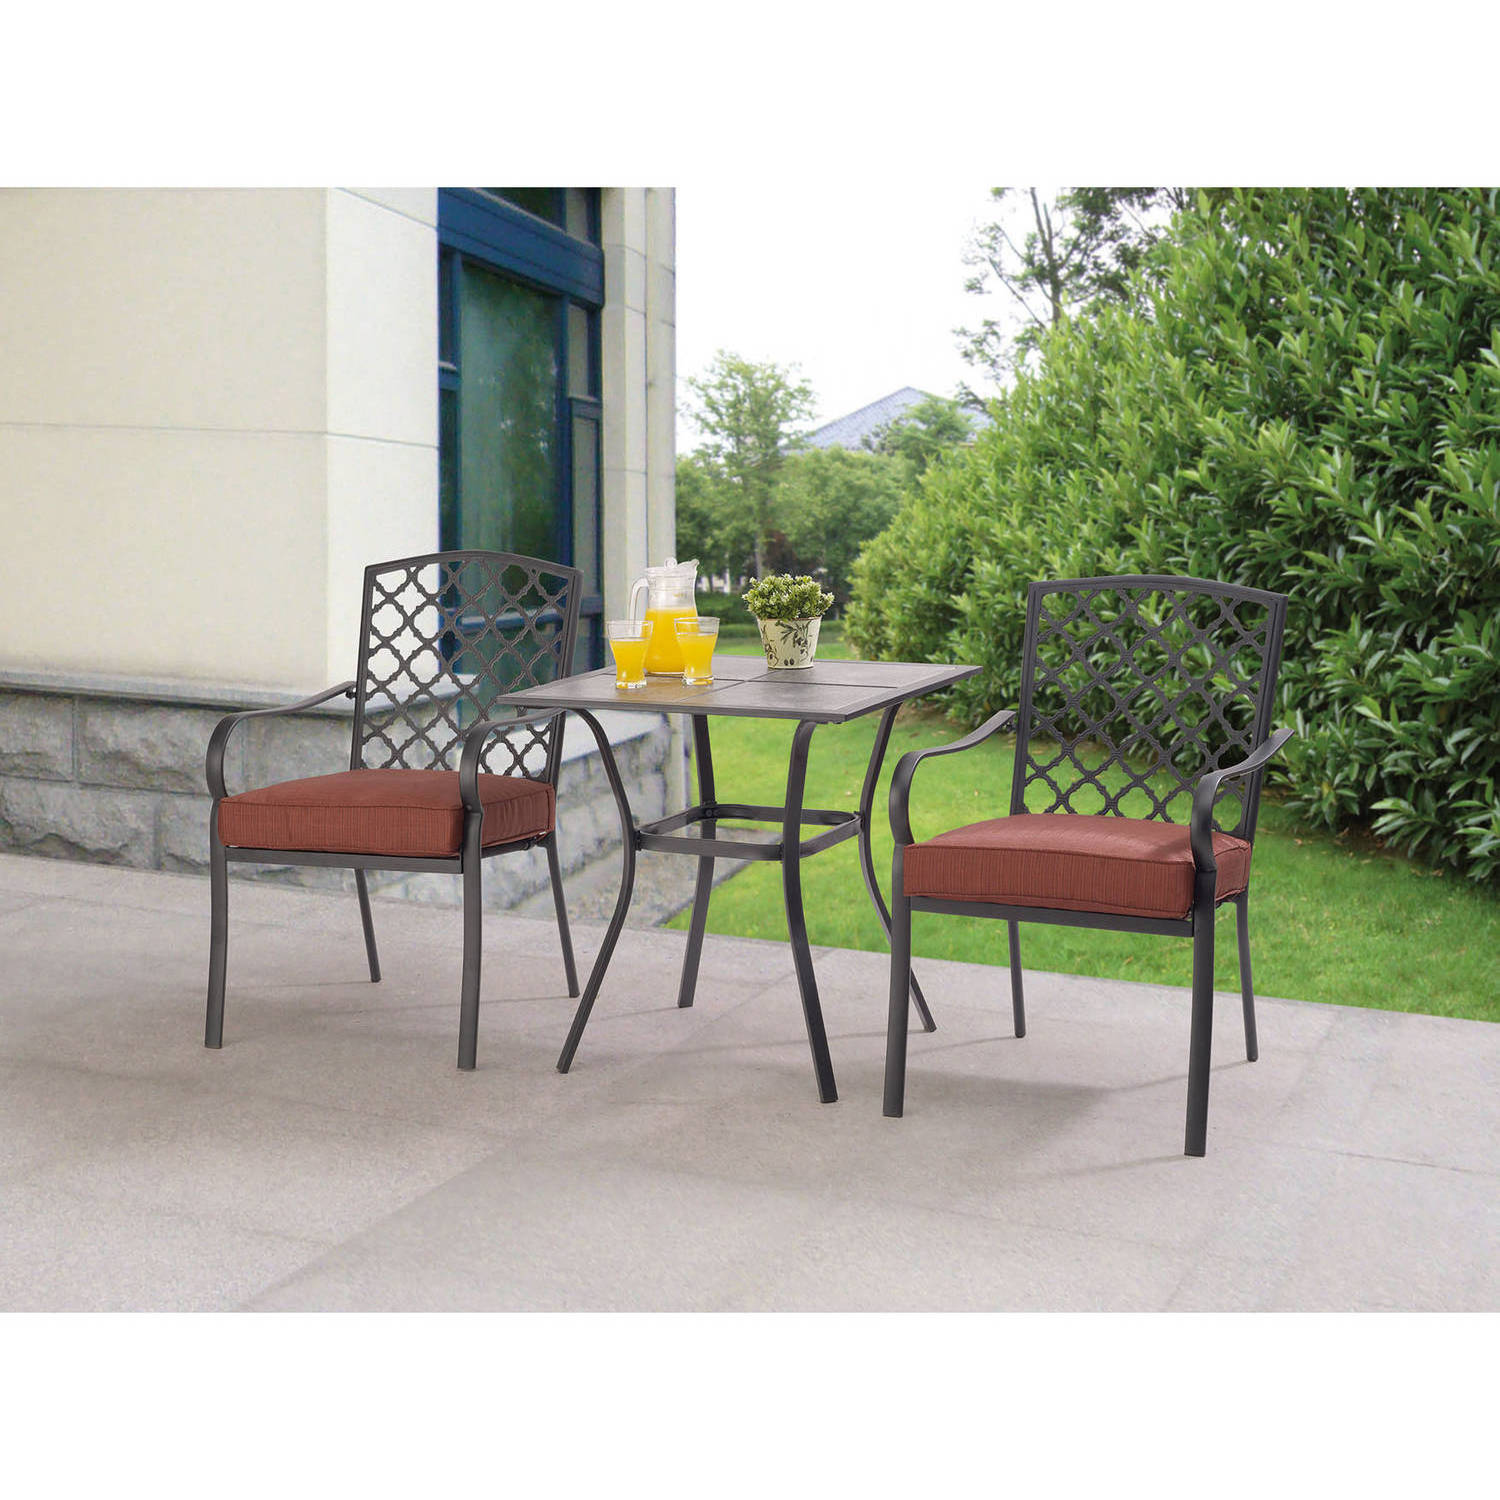 mainstays grayson court 3piece bistro set